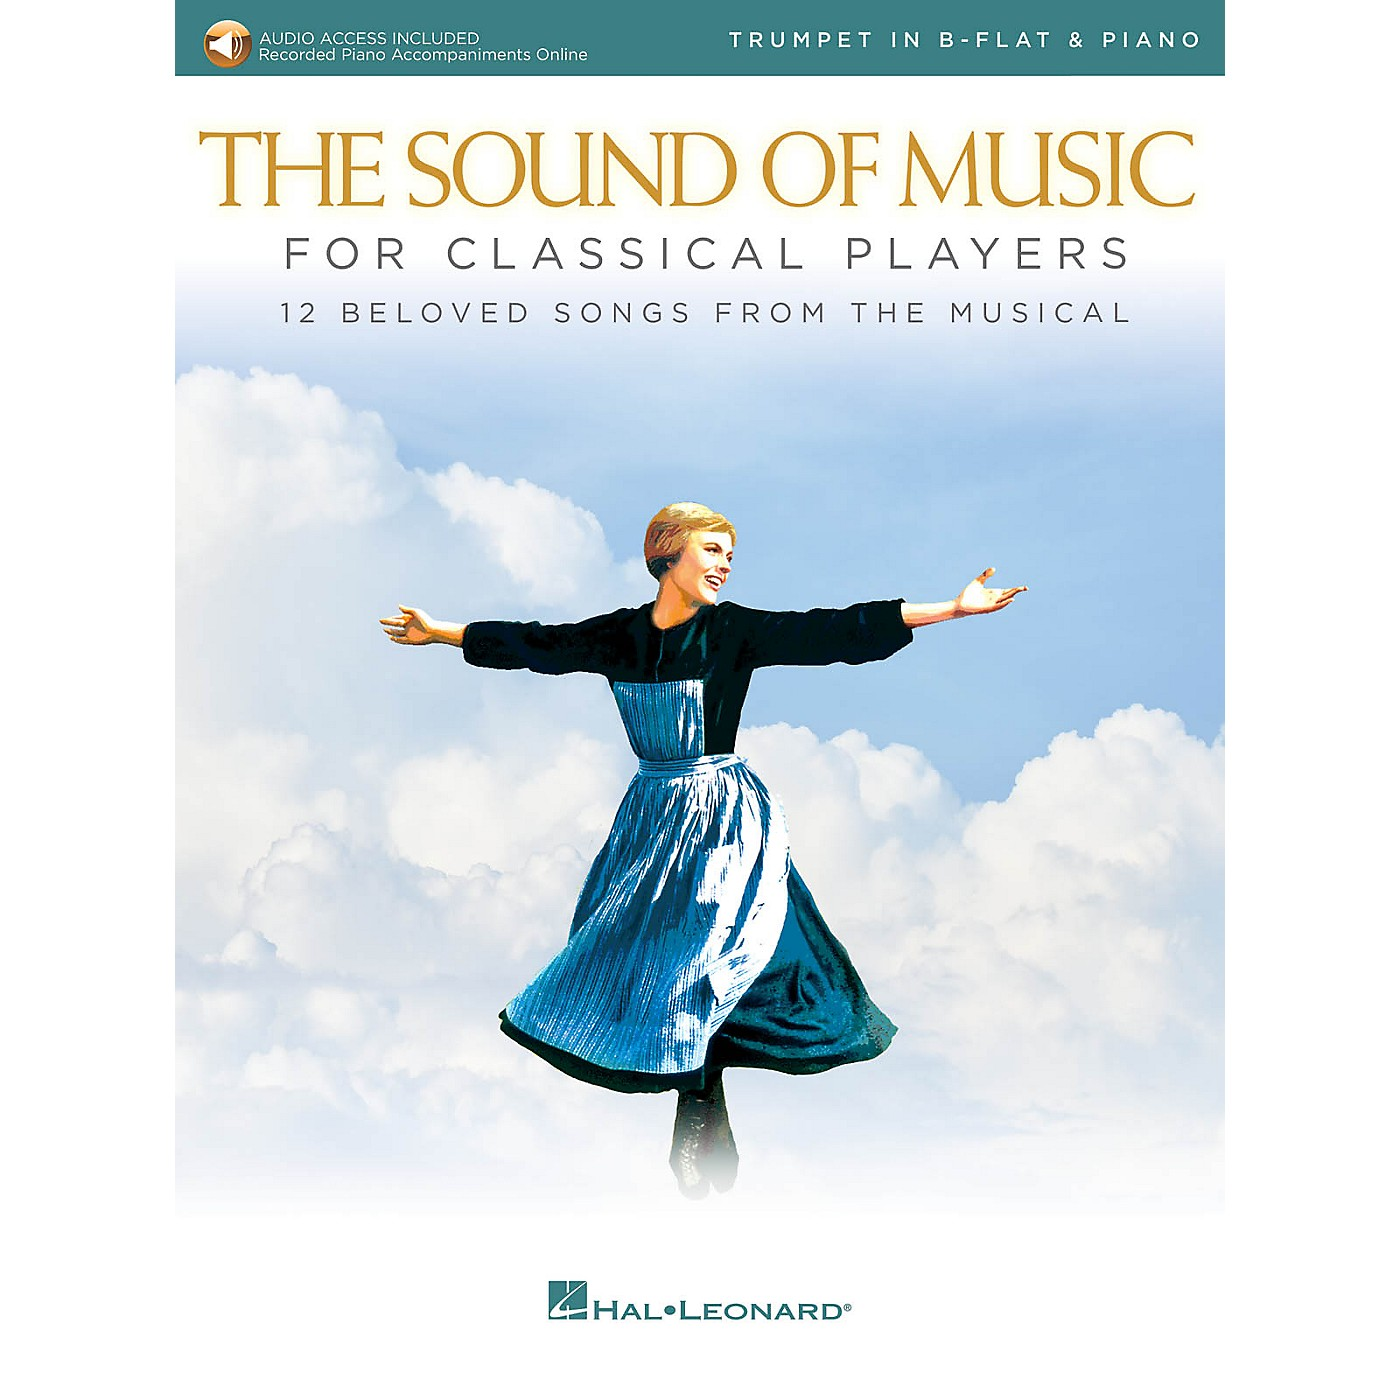 Hal Leonard The Sound of Music for Classical Players - Trumpet and Piano Book/Audio Online thumbnail